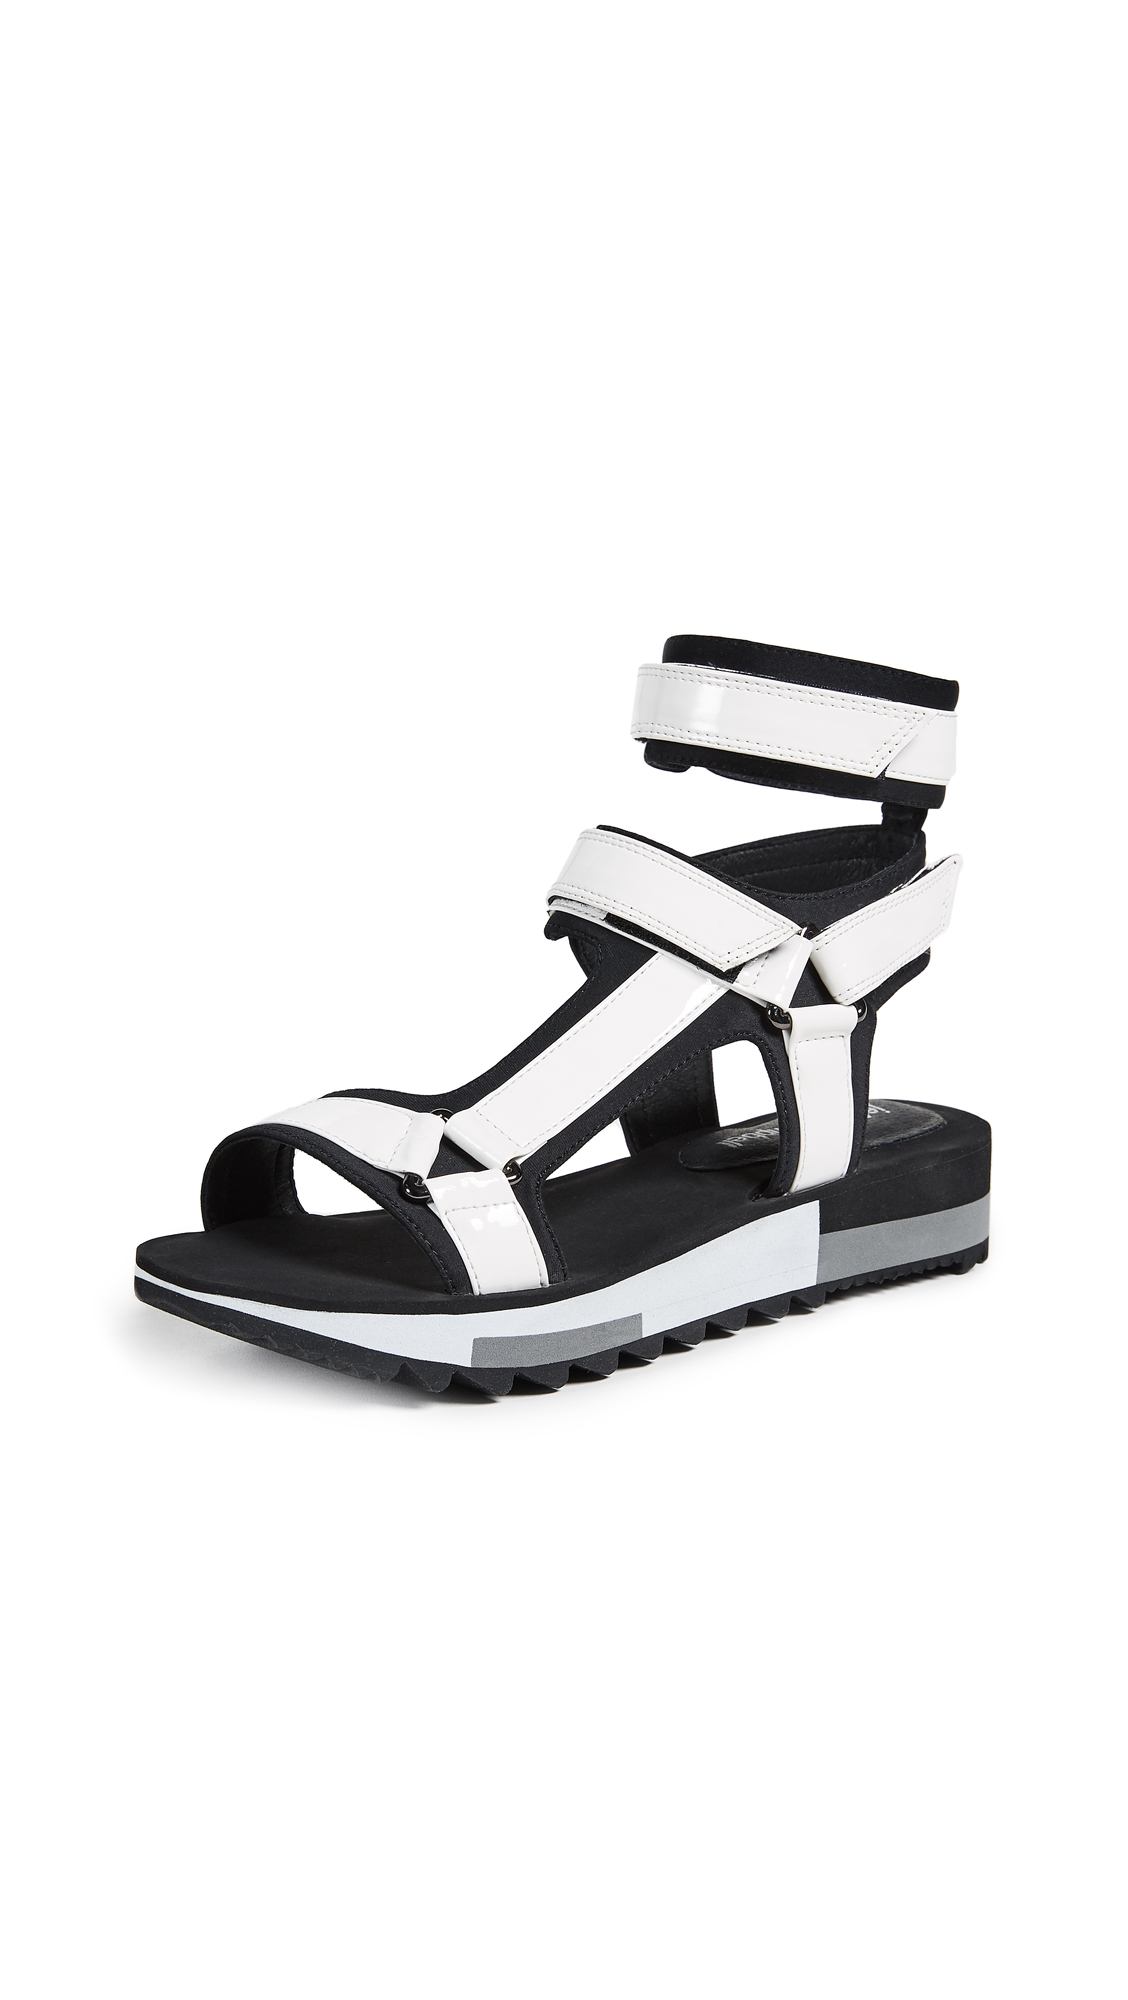 Jeffrey Campbell Bayport Sporty Sandals - White/Black